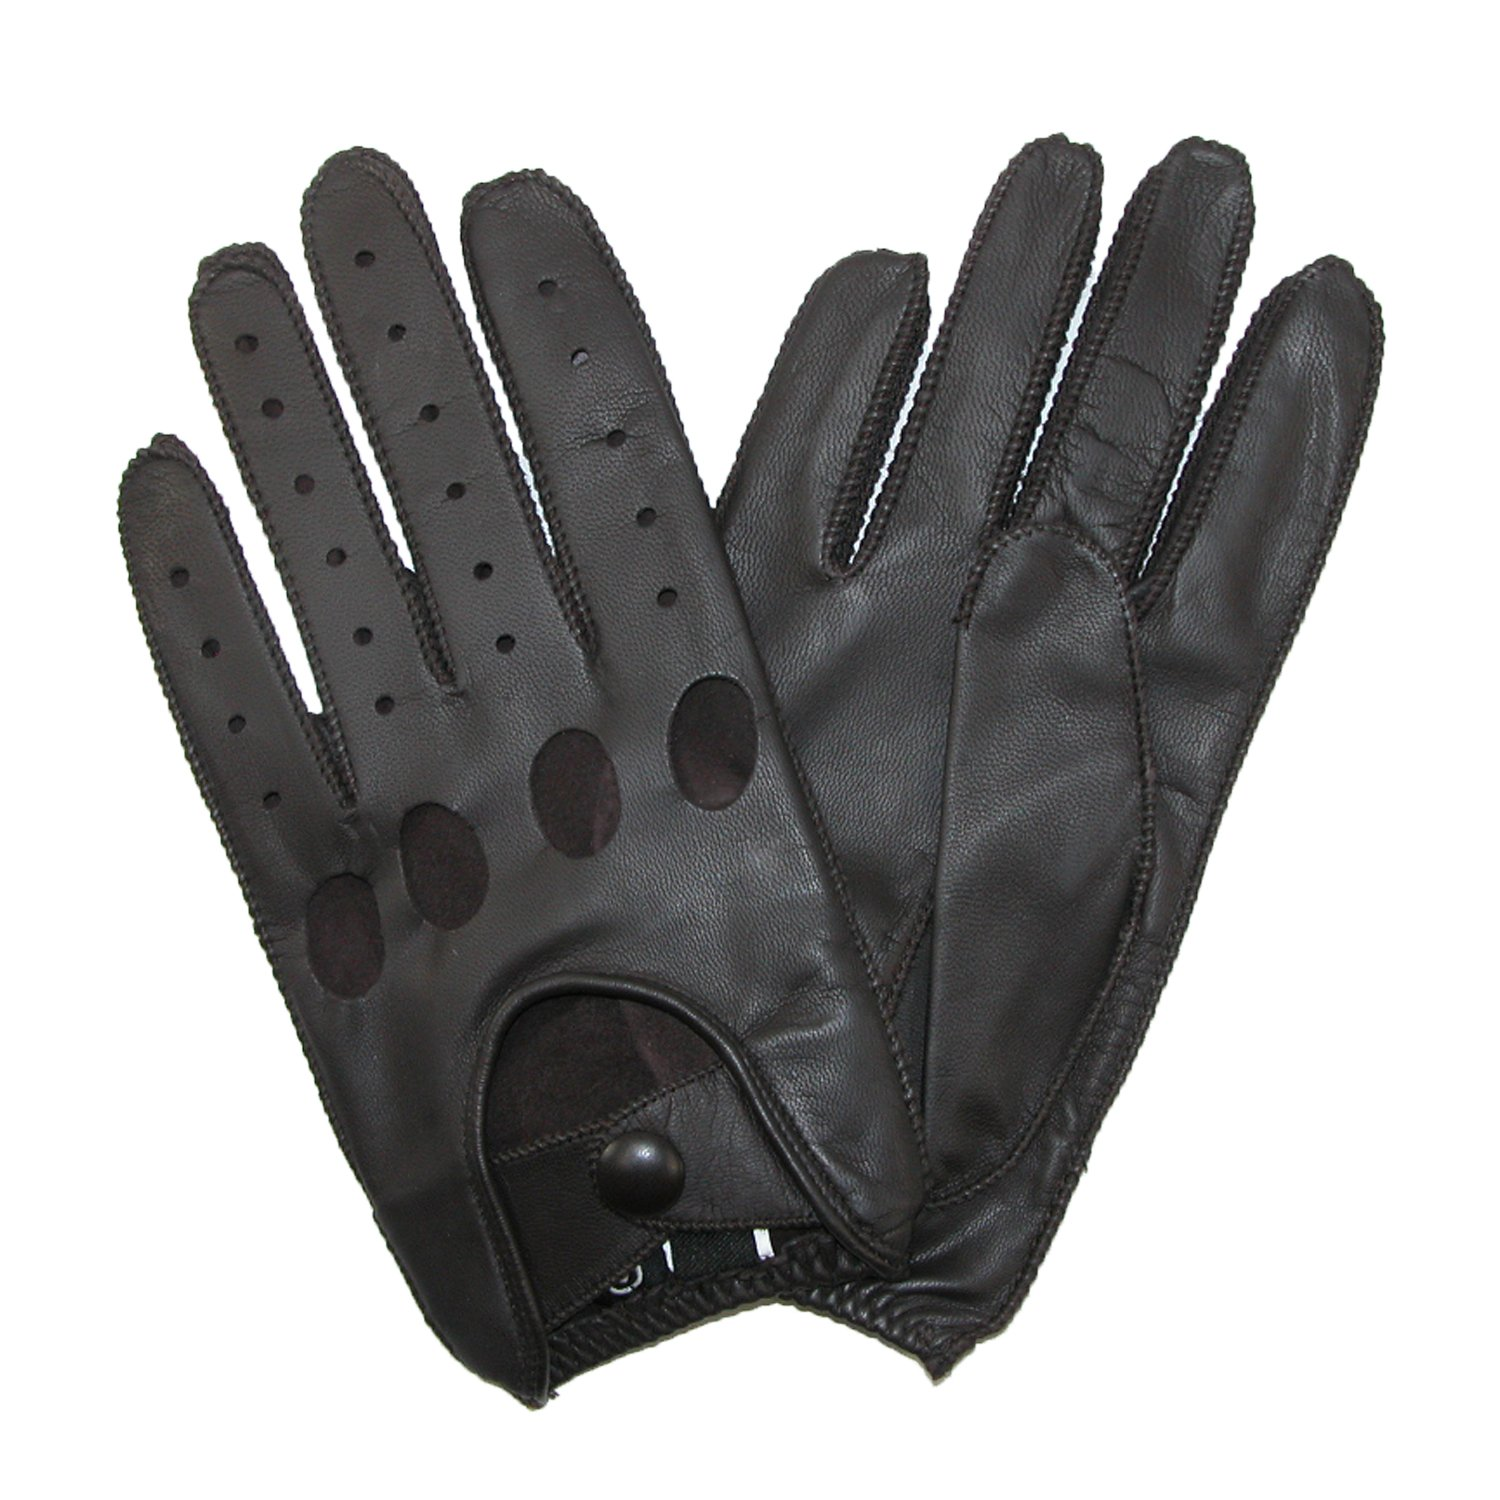 Leather driving gloves macys - Isotoner Men S Smooth Leather Driving Glove With Covered Snap Brown Medium At Amazon Men S Clothing Store Cold Weather Gloves